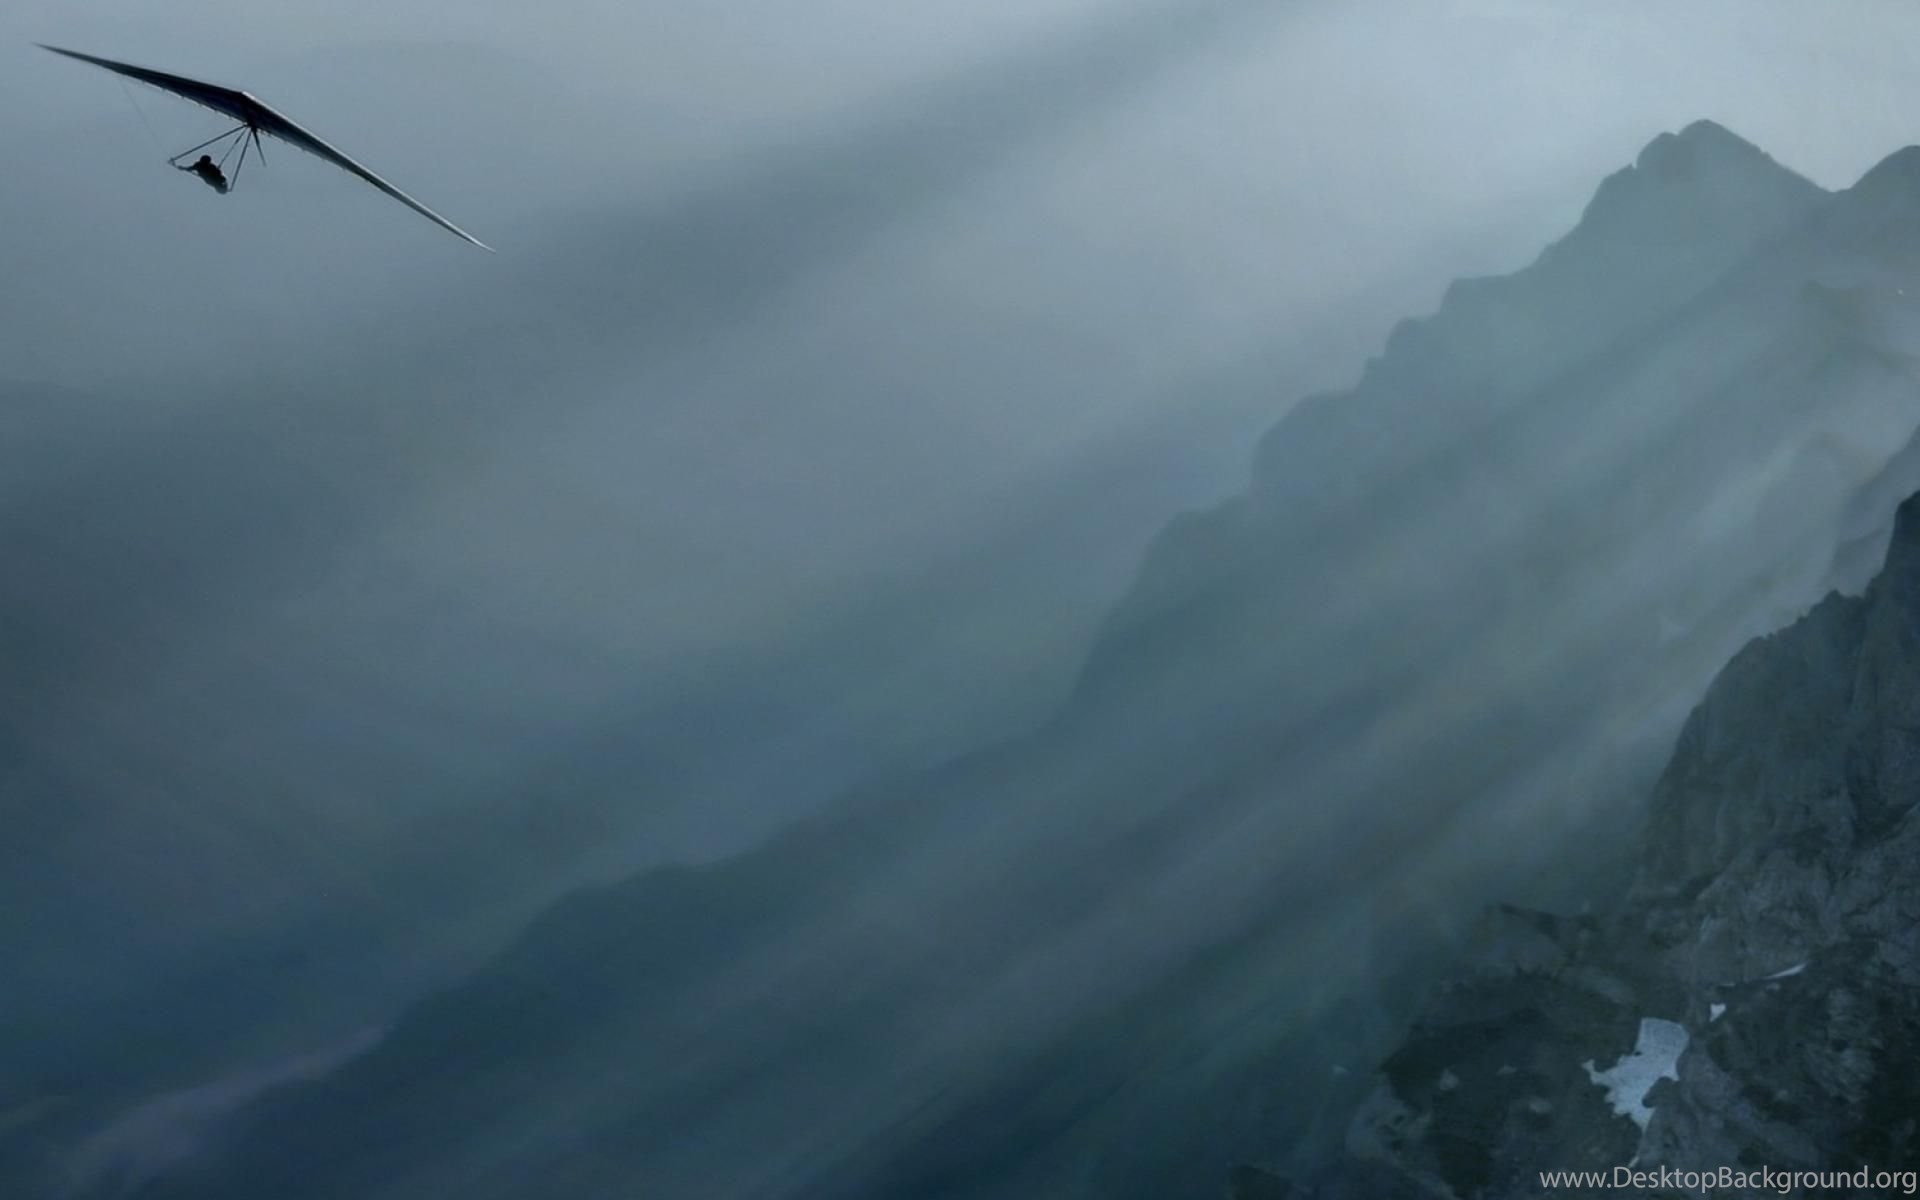 Download Wallpapers Hang Glider Over The Mountains (3200 X